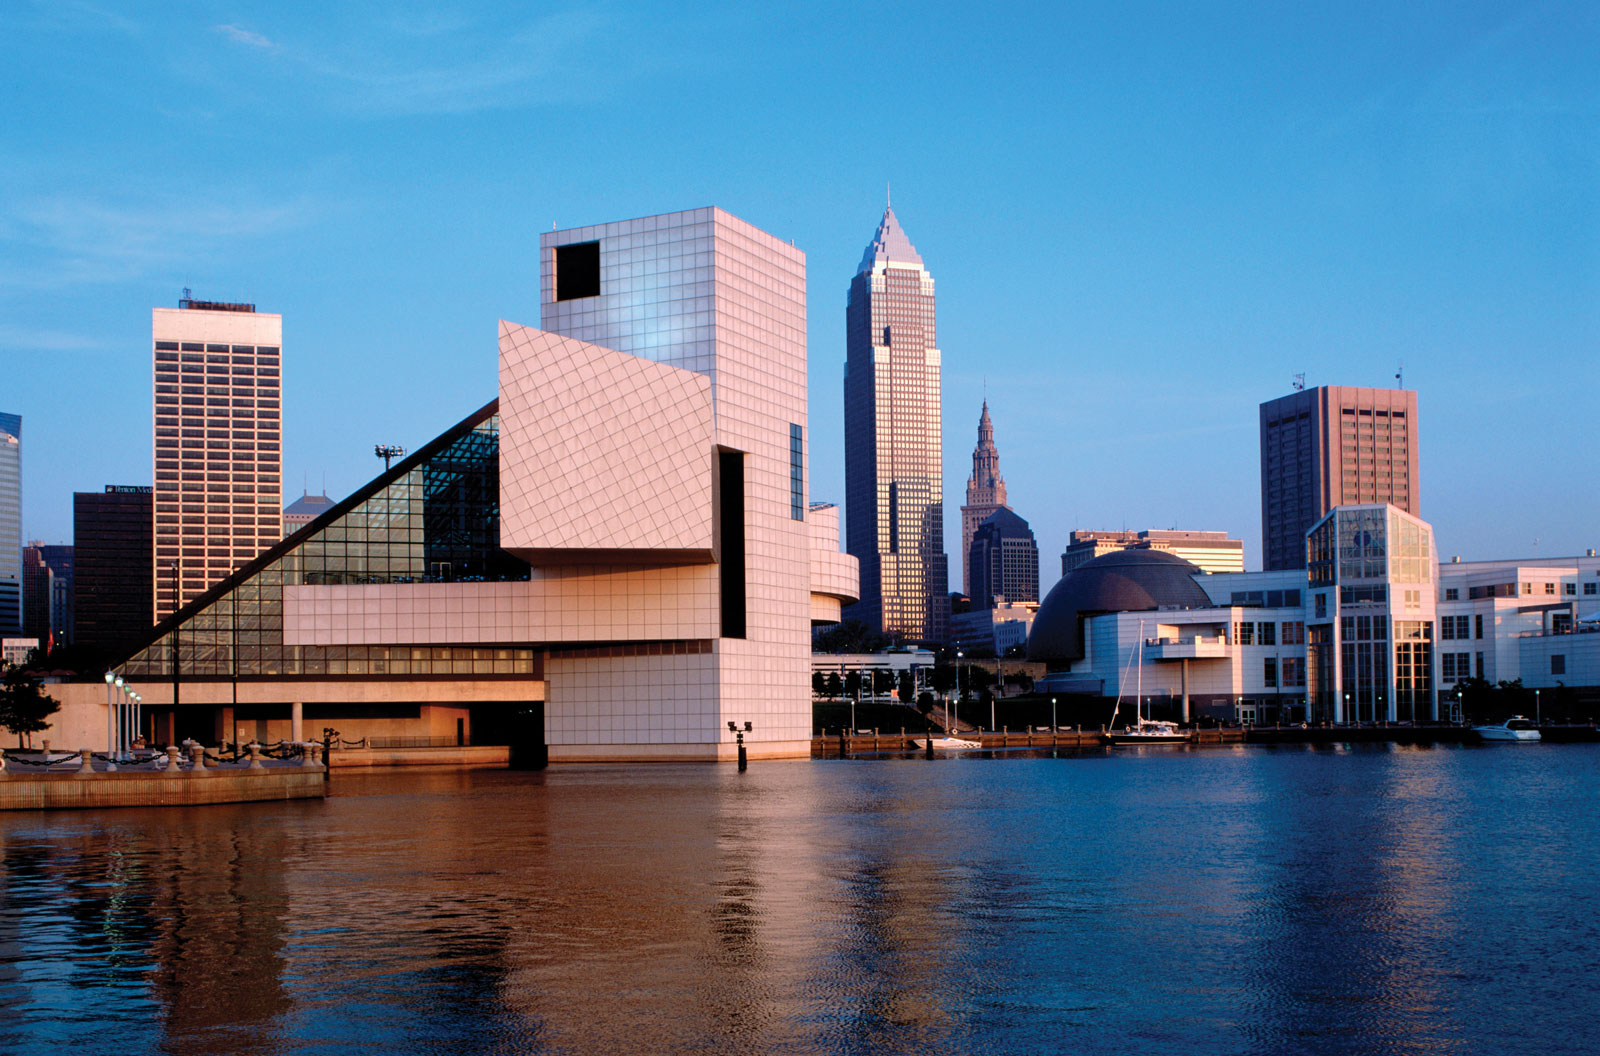 turismounfv: Cleveland Ohio: Rock and Roll Hall of Fame and Museum